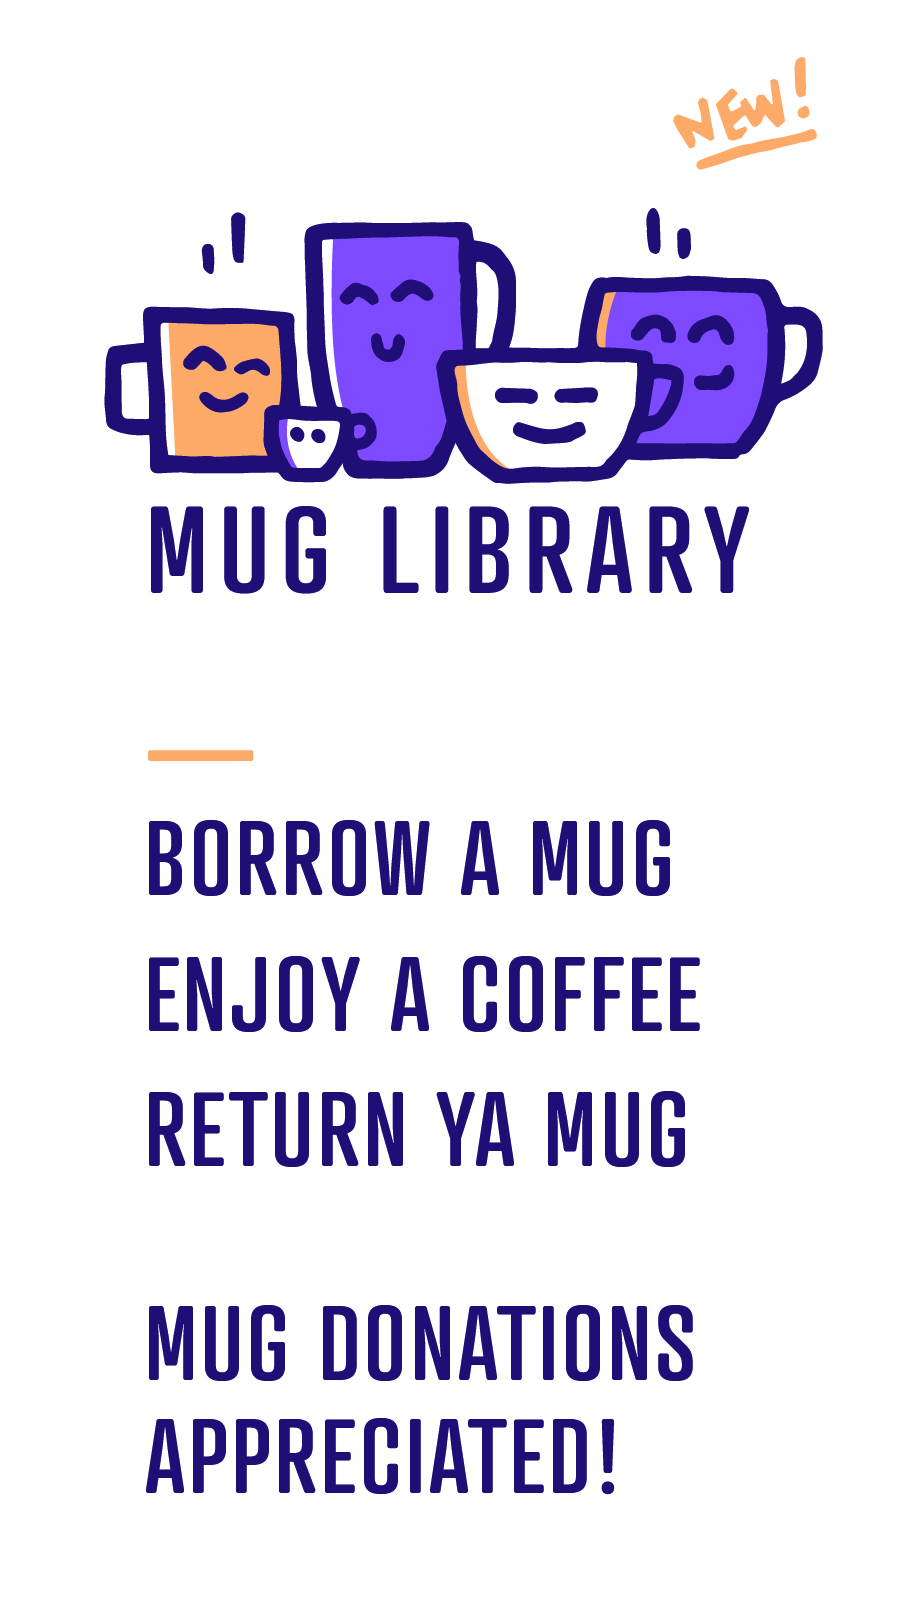 mug library instructions digital graphic